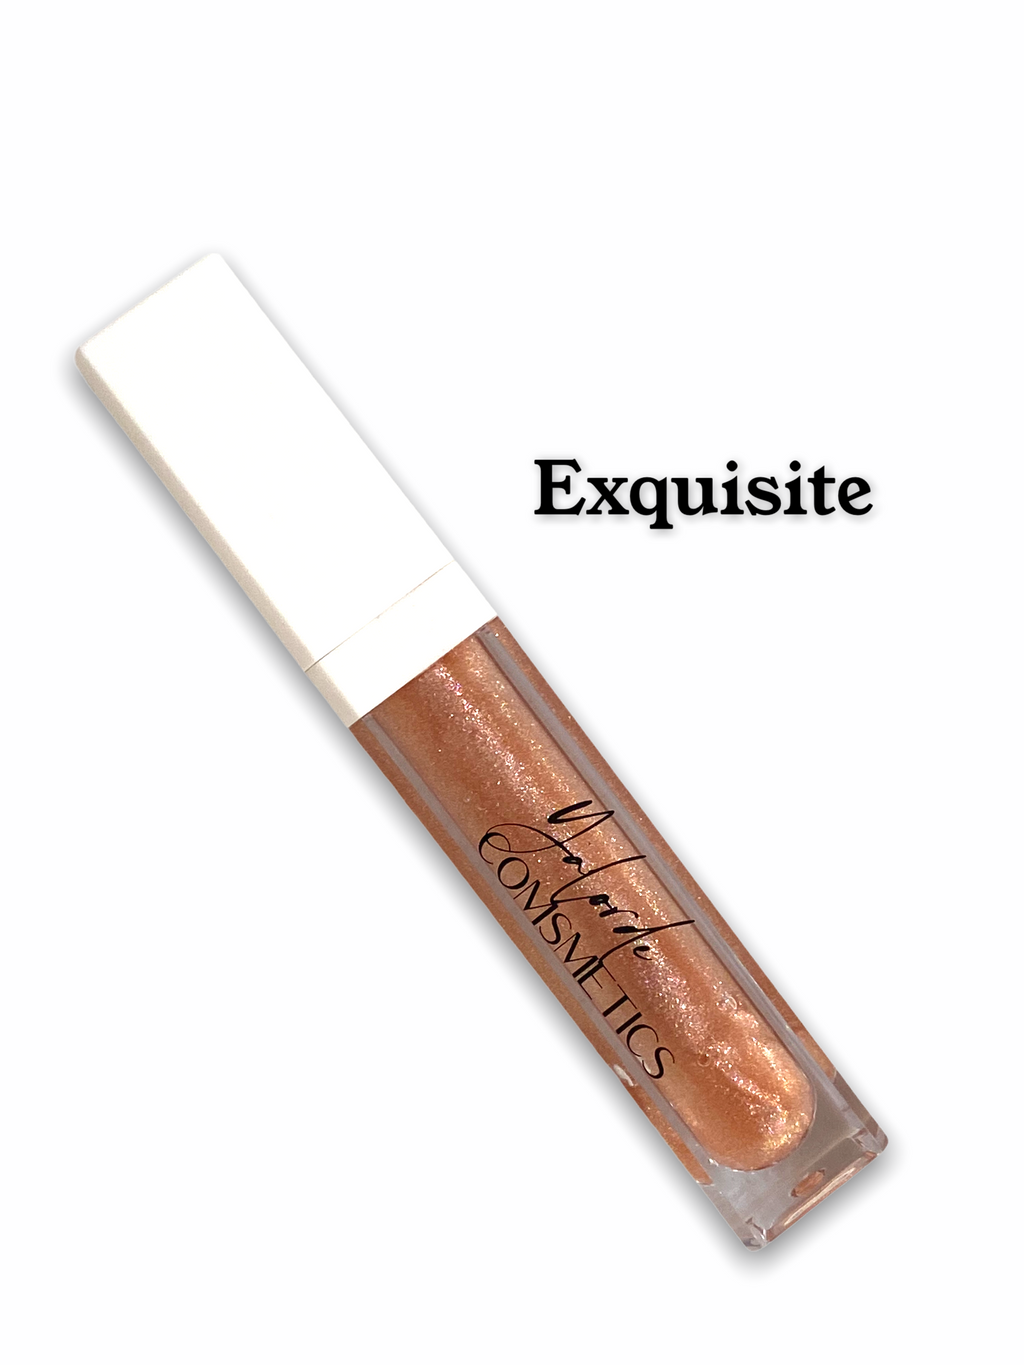 New! Exquisite